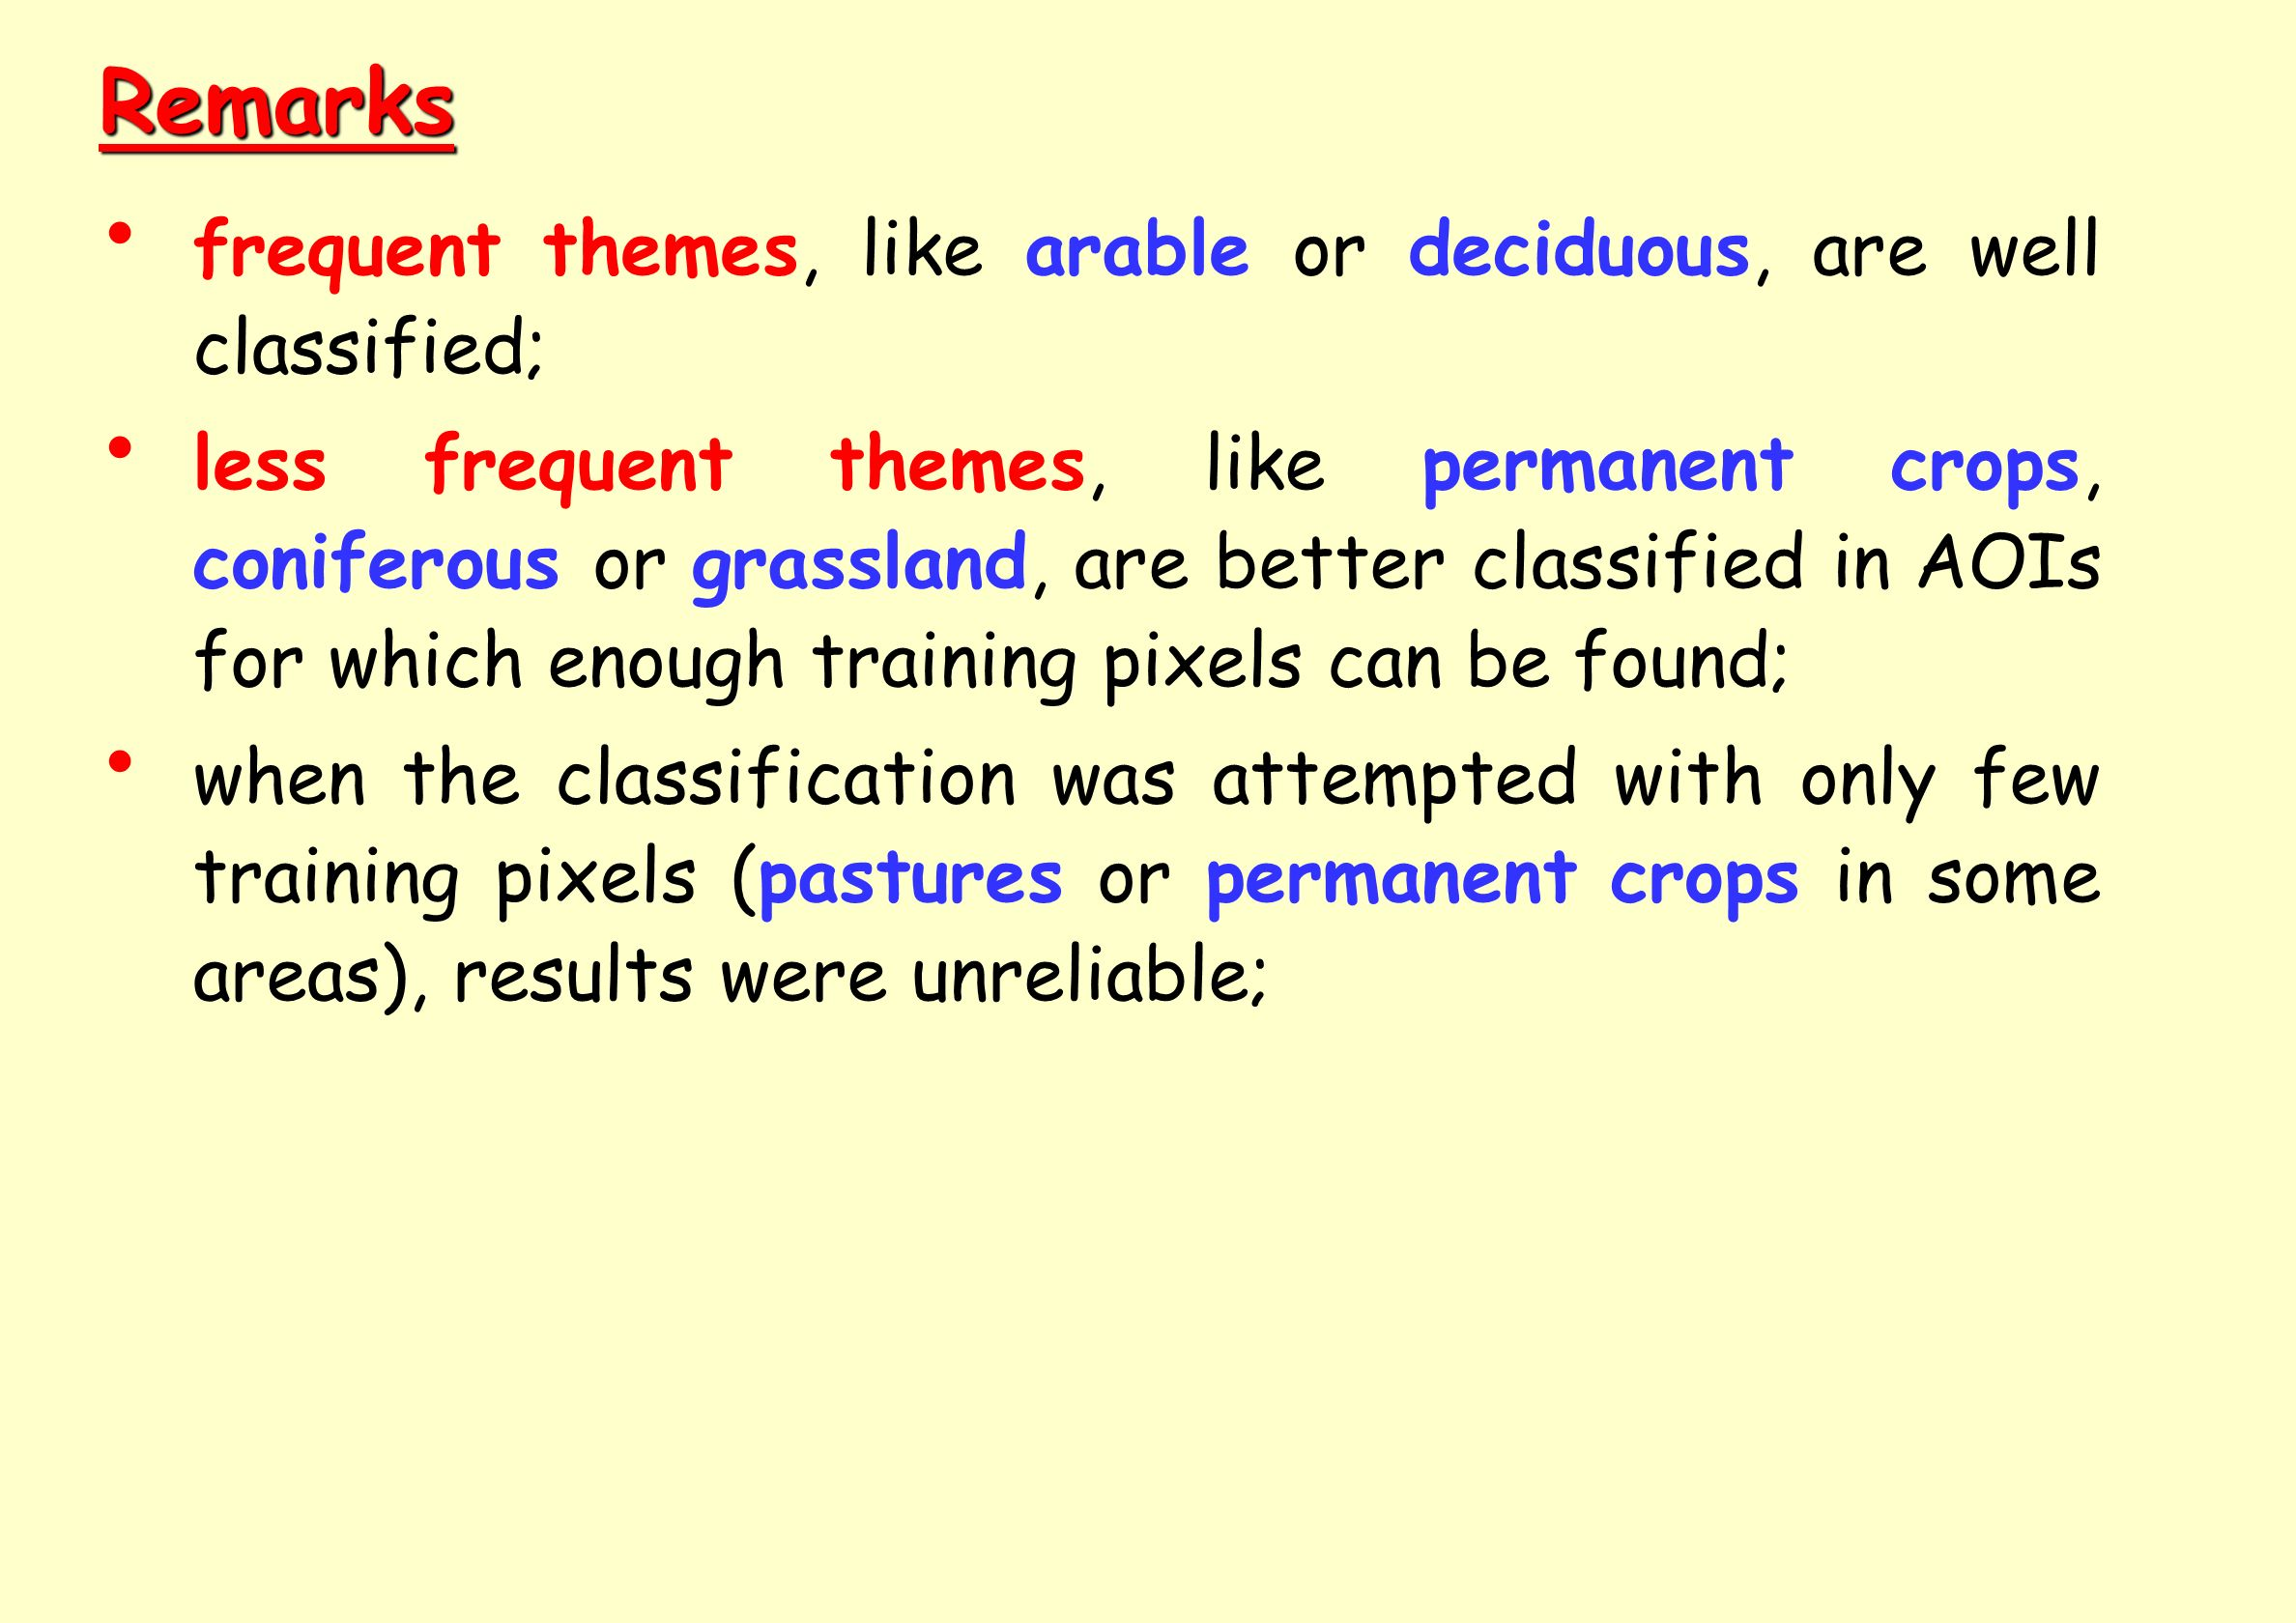 Remarks frequent themes, like arable or deciduous, are well classified; less frequent themes, like permanent crops, coniferous or grassland, are better classified in AOIs for which enough training pixels can be found; when the classification was attempted with only few training pixels (pastures or permanent crops in some areas), results were unreliable;